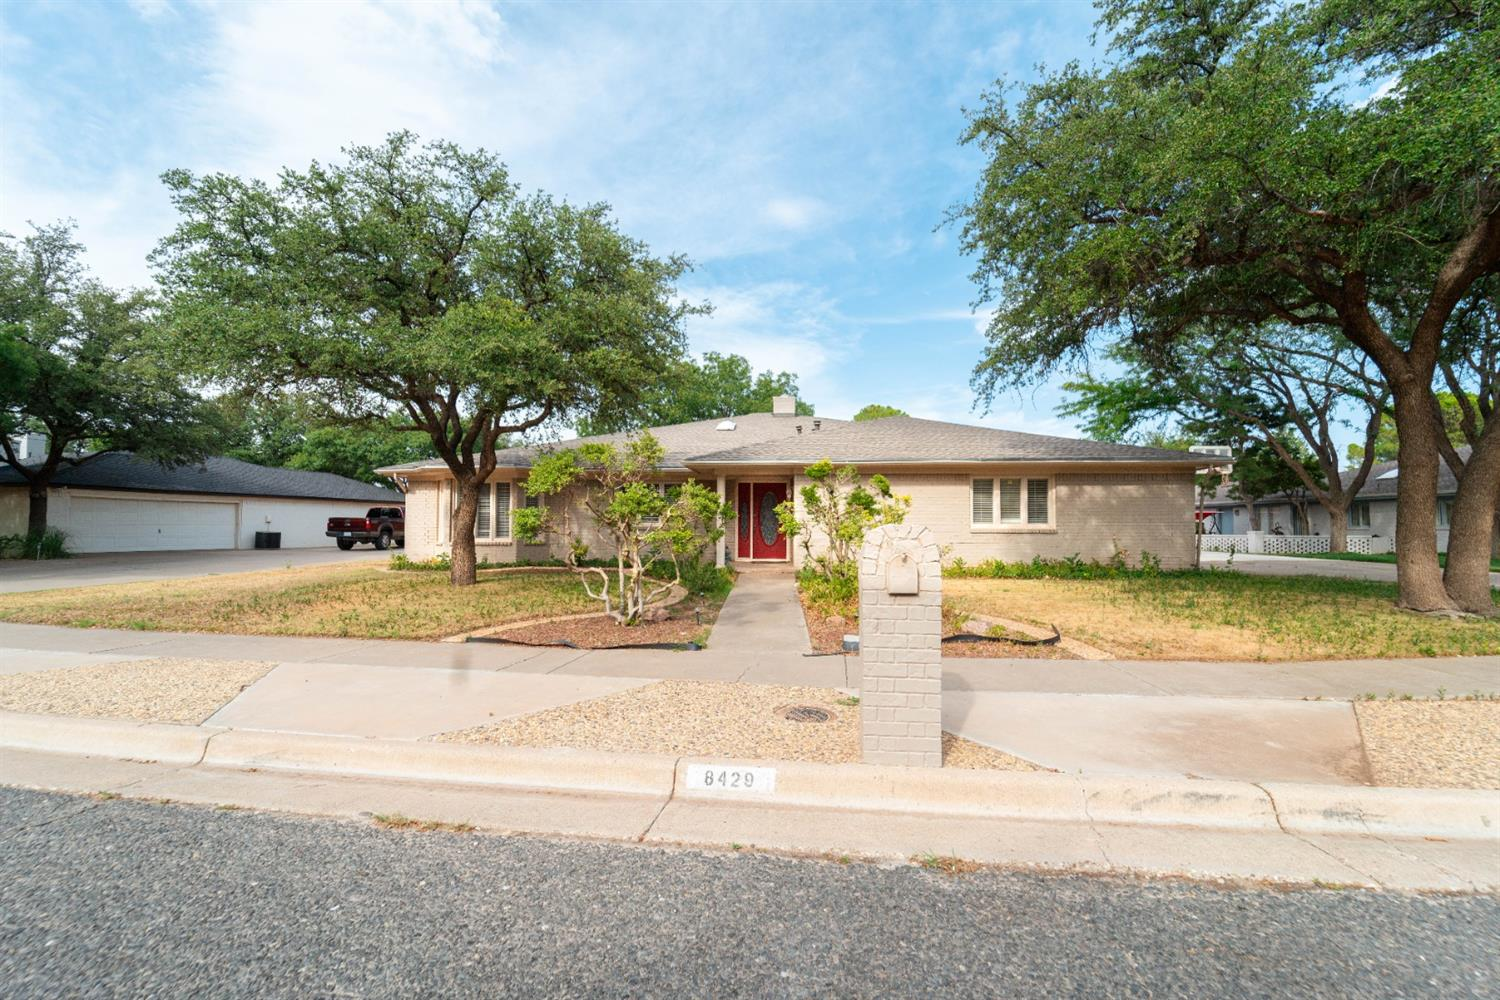 Motivated Seller! Here it is, your chance to make your dream home a reality! Right at 4,544sqft you will have all the space you and your family need to sprawl out, entertain and enjoy one another while looking out onto the Fairway. The owner made a great investment into this home right where it counts... the Master Closet! With your 3rd Car Garage as a private entrance, you will have the most privacy and connivence coming too and from home. Don't forget to checkout this outdoor kitchen and pergola while you're here, perfect for those who like to spend time outside. Wonderful view from the master bedroom of the course. This price is As-Is, buyer to pay closing costs.